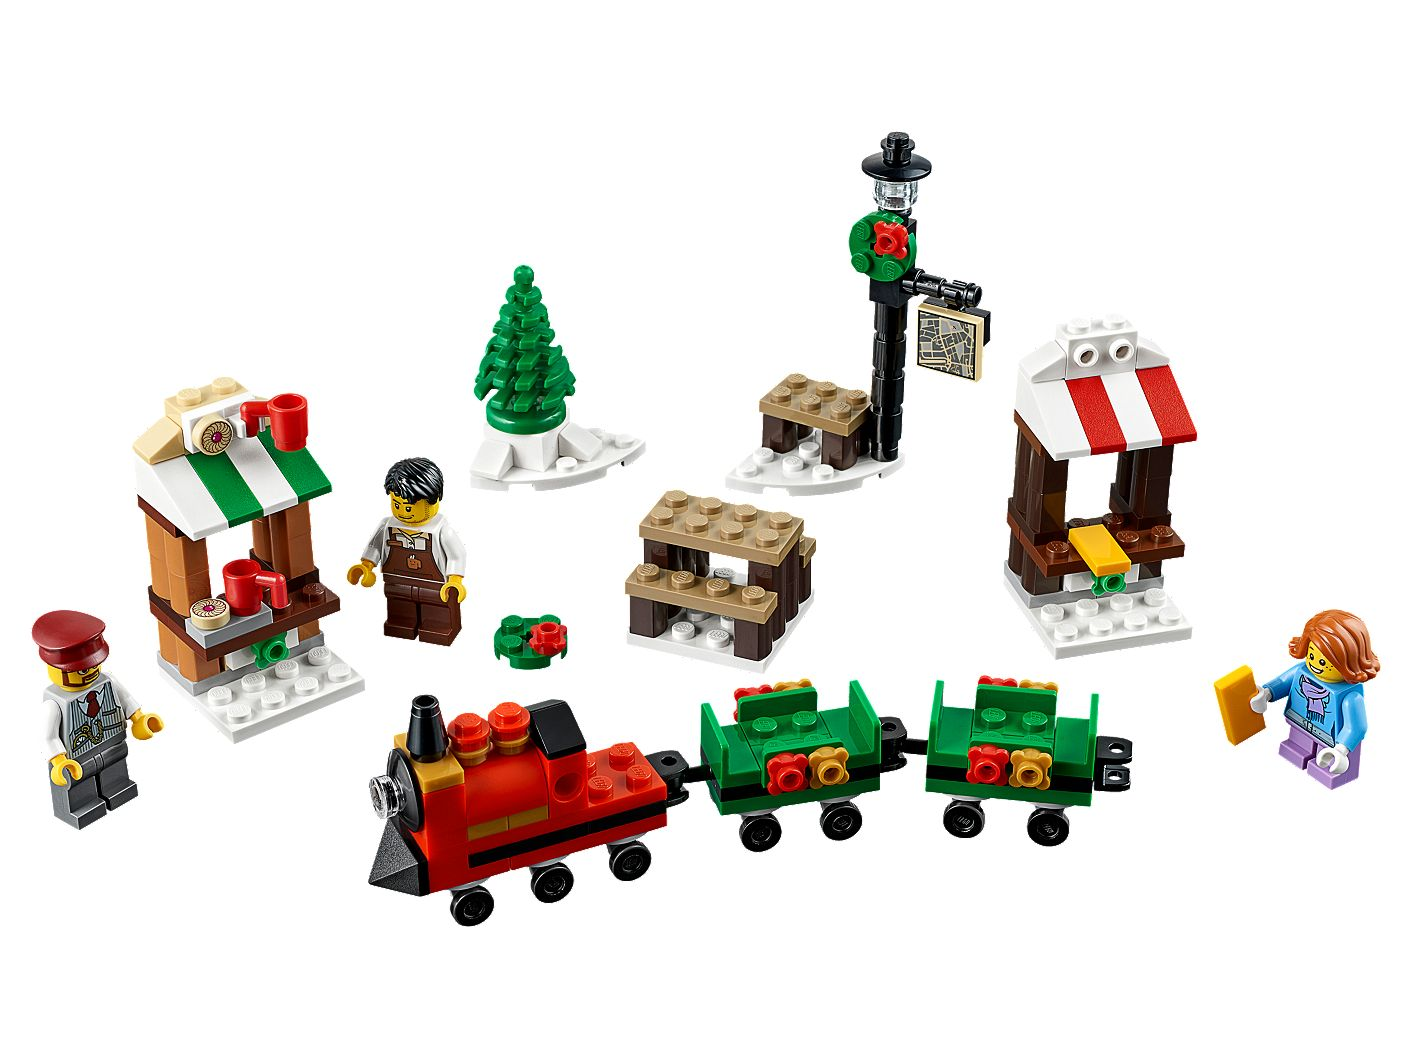 Christmas Train.Lego Christmas Train Ride 40262 Unknown Buy Online At The Official Lego Shop Us